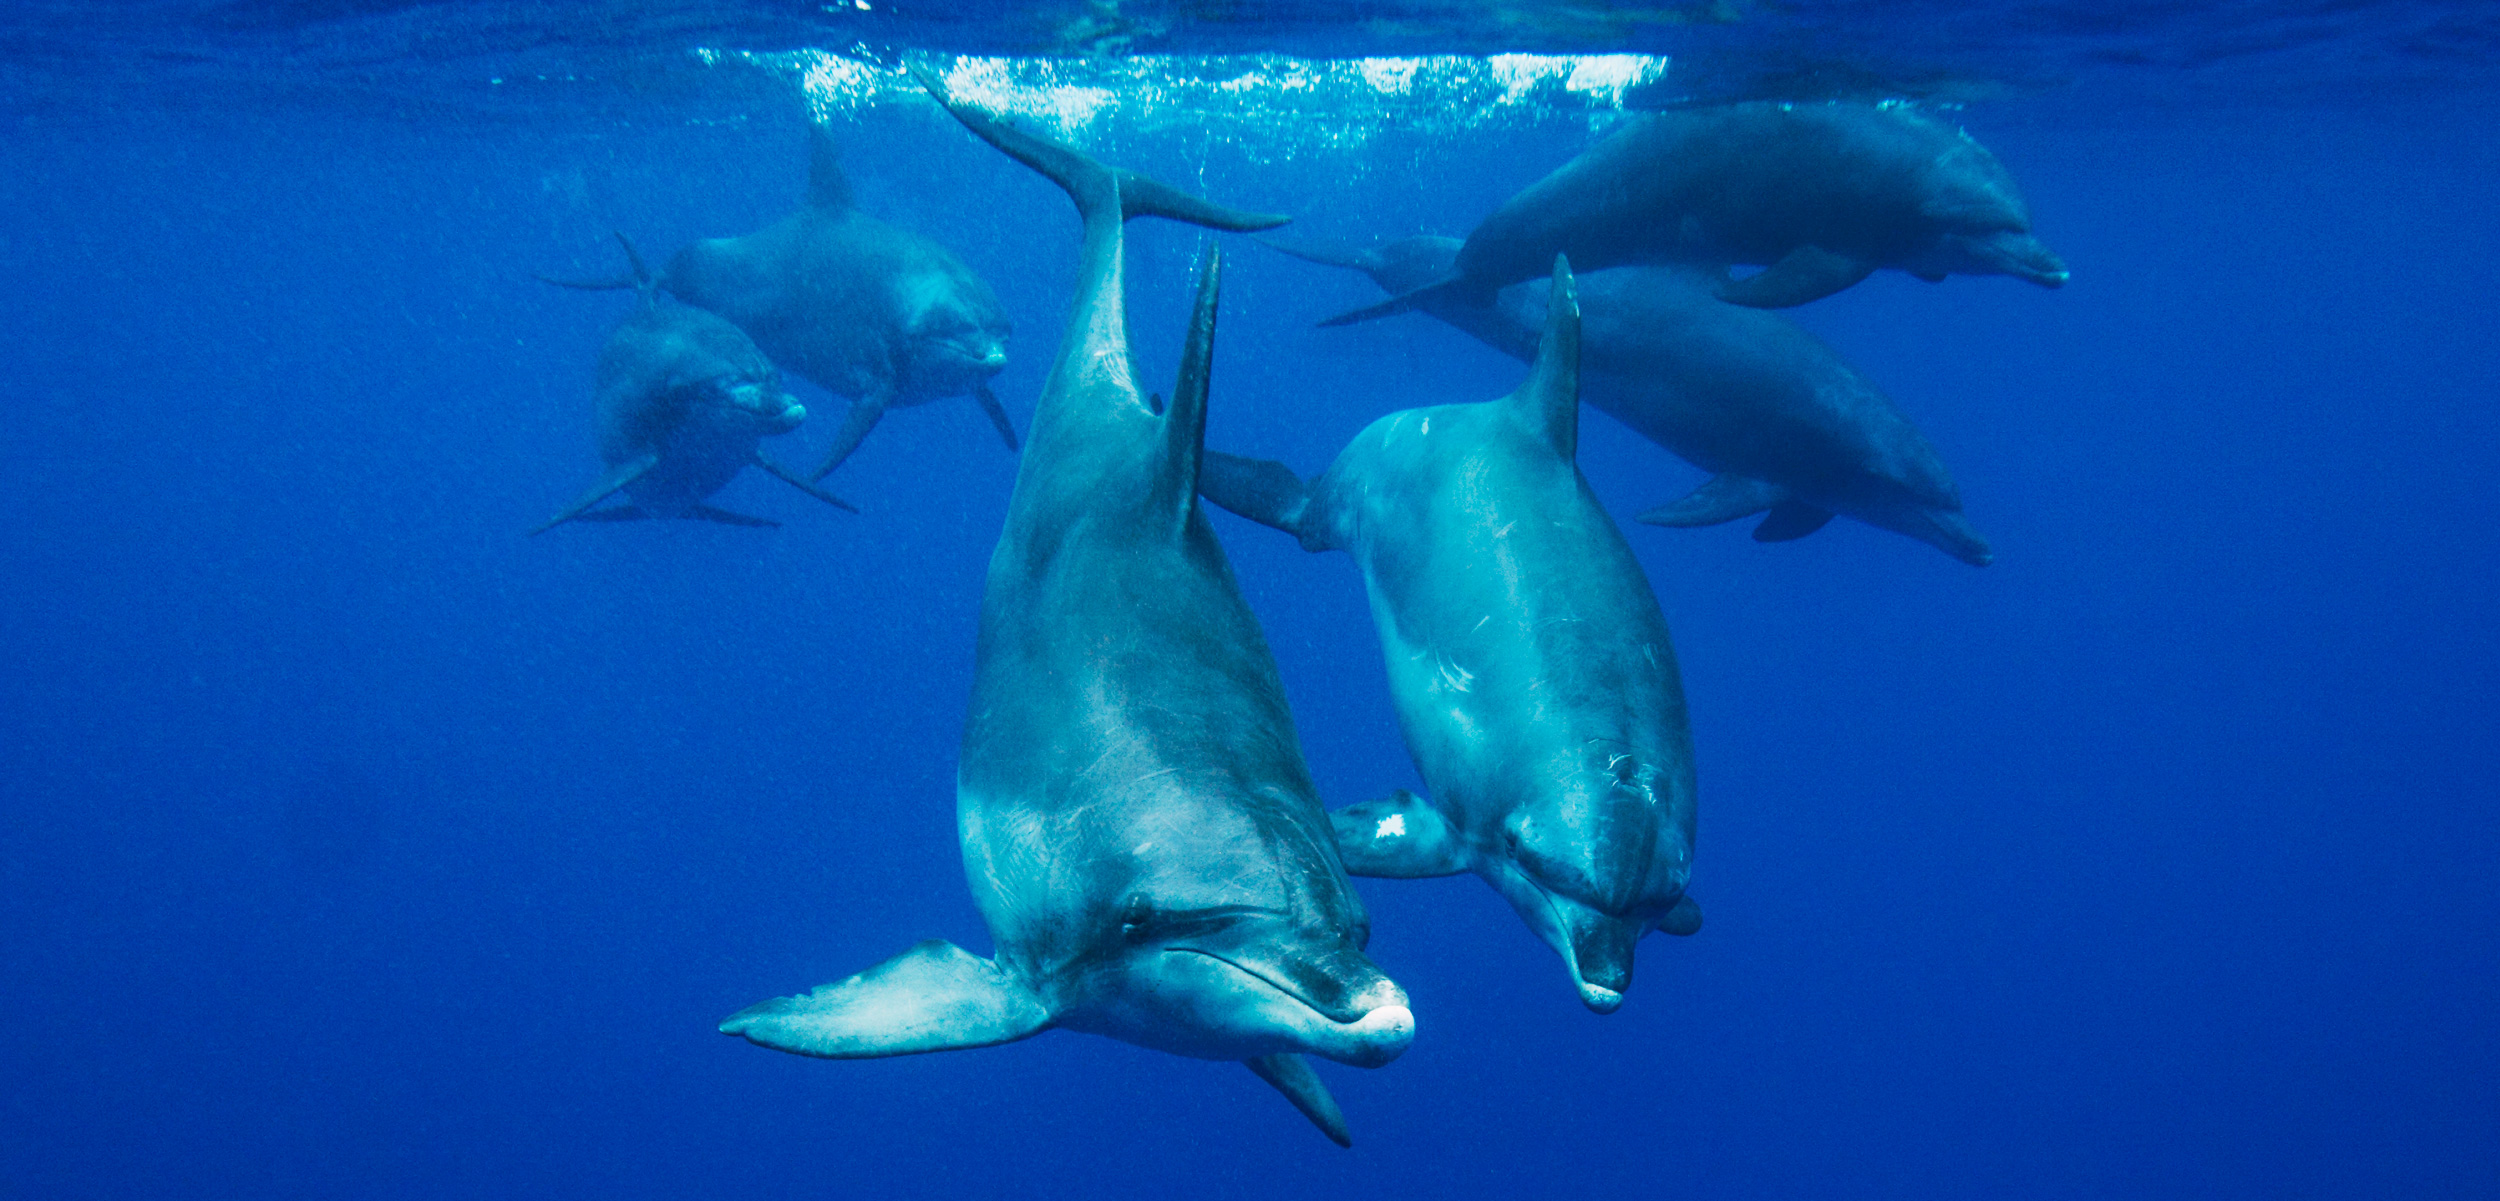 The stress of diving could tax dolphins and other marine mammals to the brink. Photo by Hiroya Minakuchi/Minden Pictures